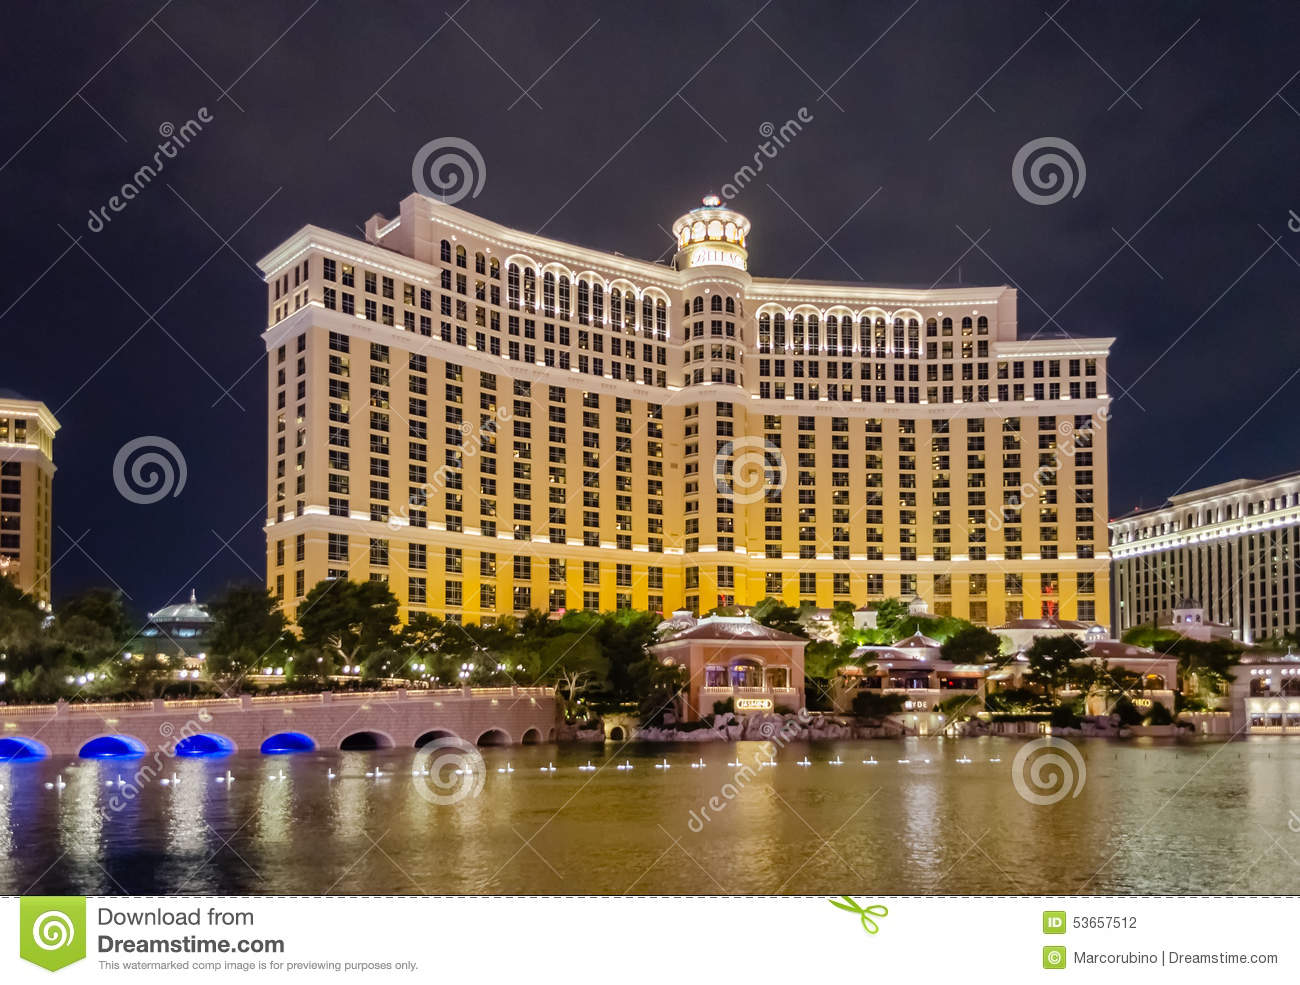 Frequently asked questions belaggio hotel and casino las vegas casino770 jeux gratuits machines sous